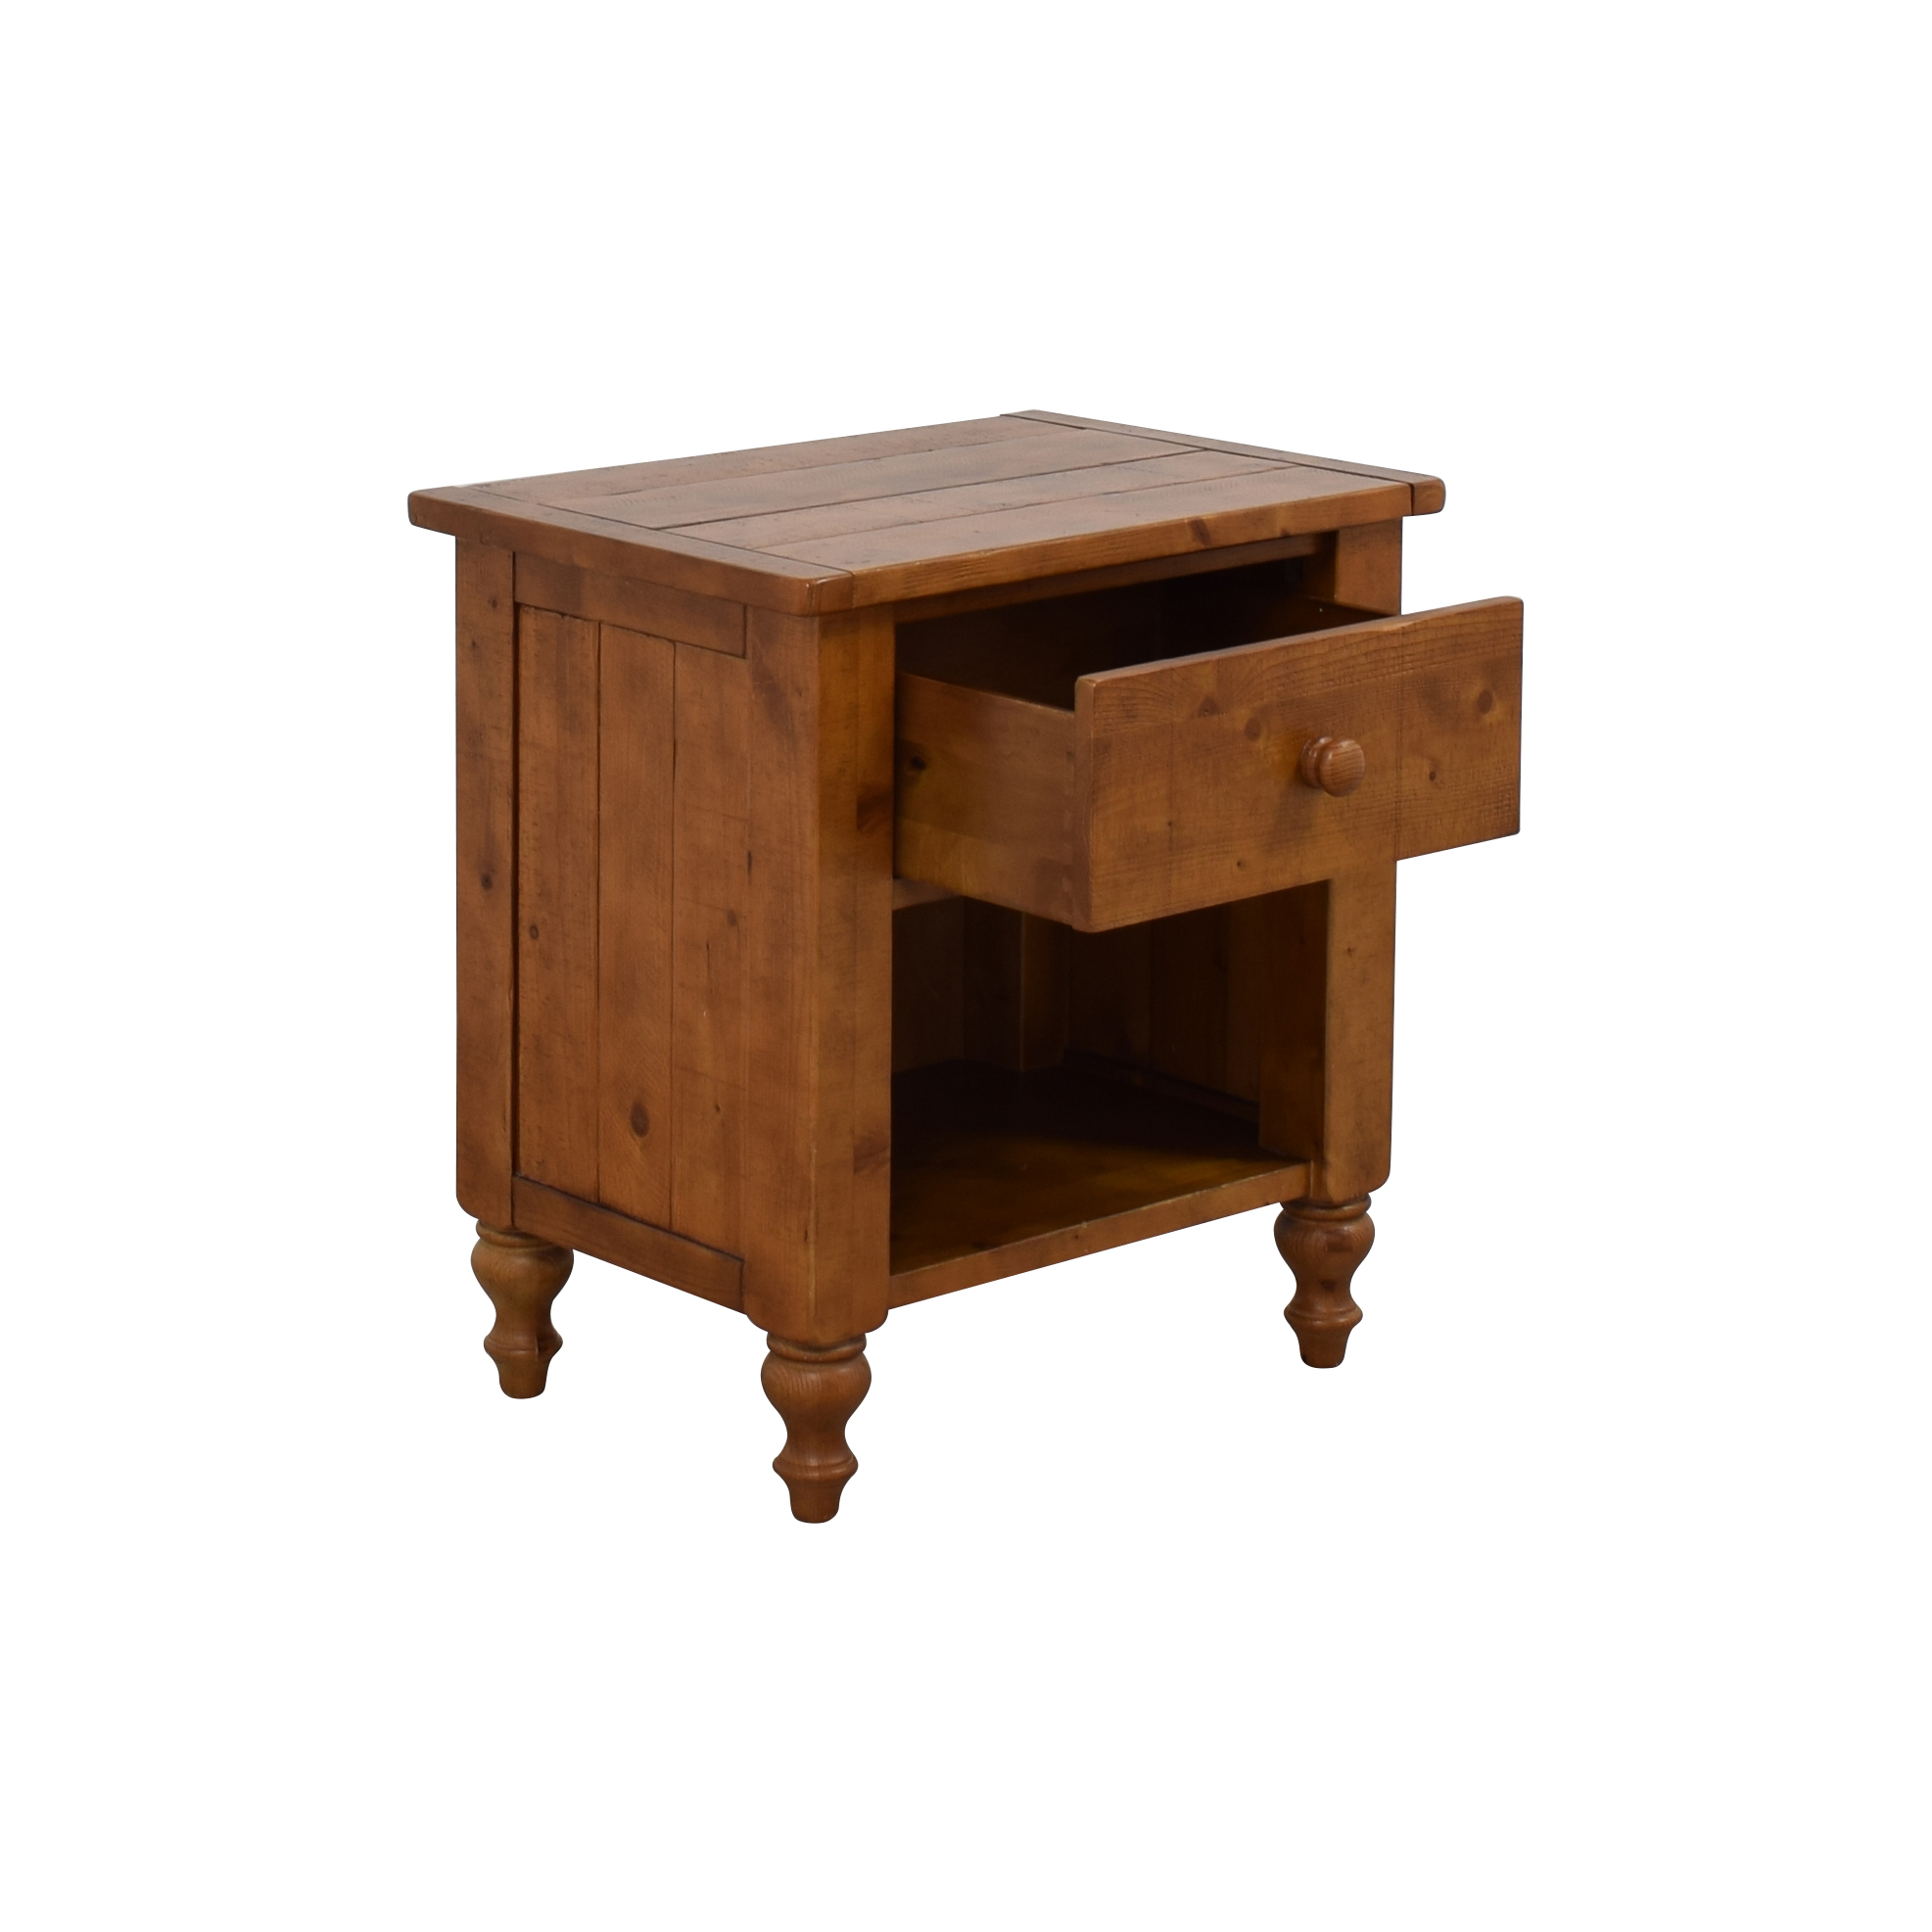 Pottery Barn Pottery Barn Wood Single Drawer Side Table Tables